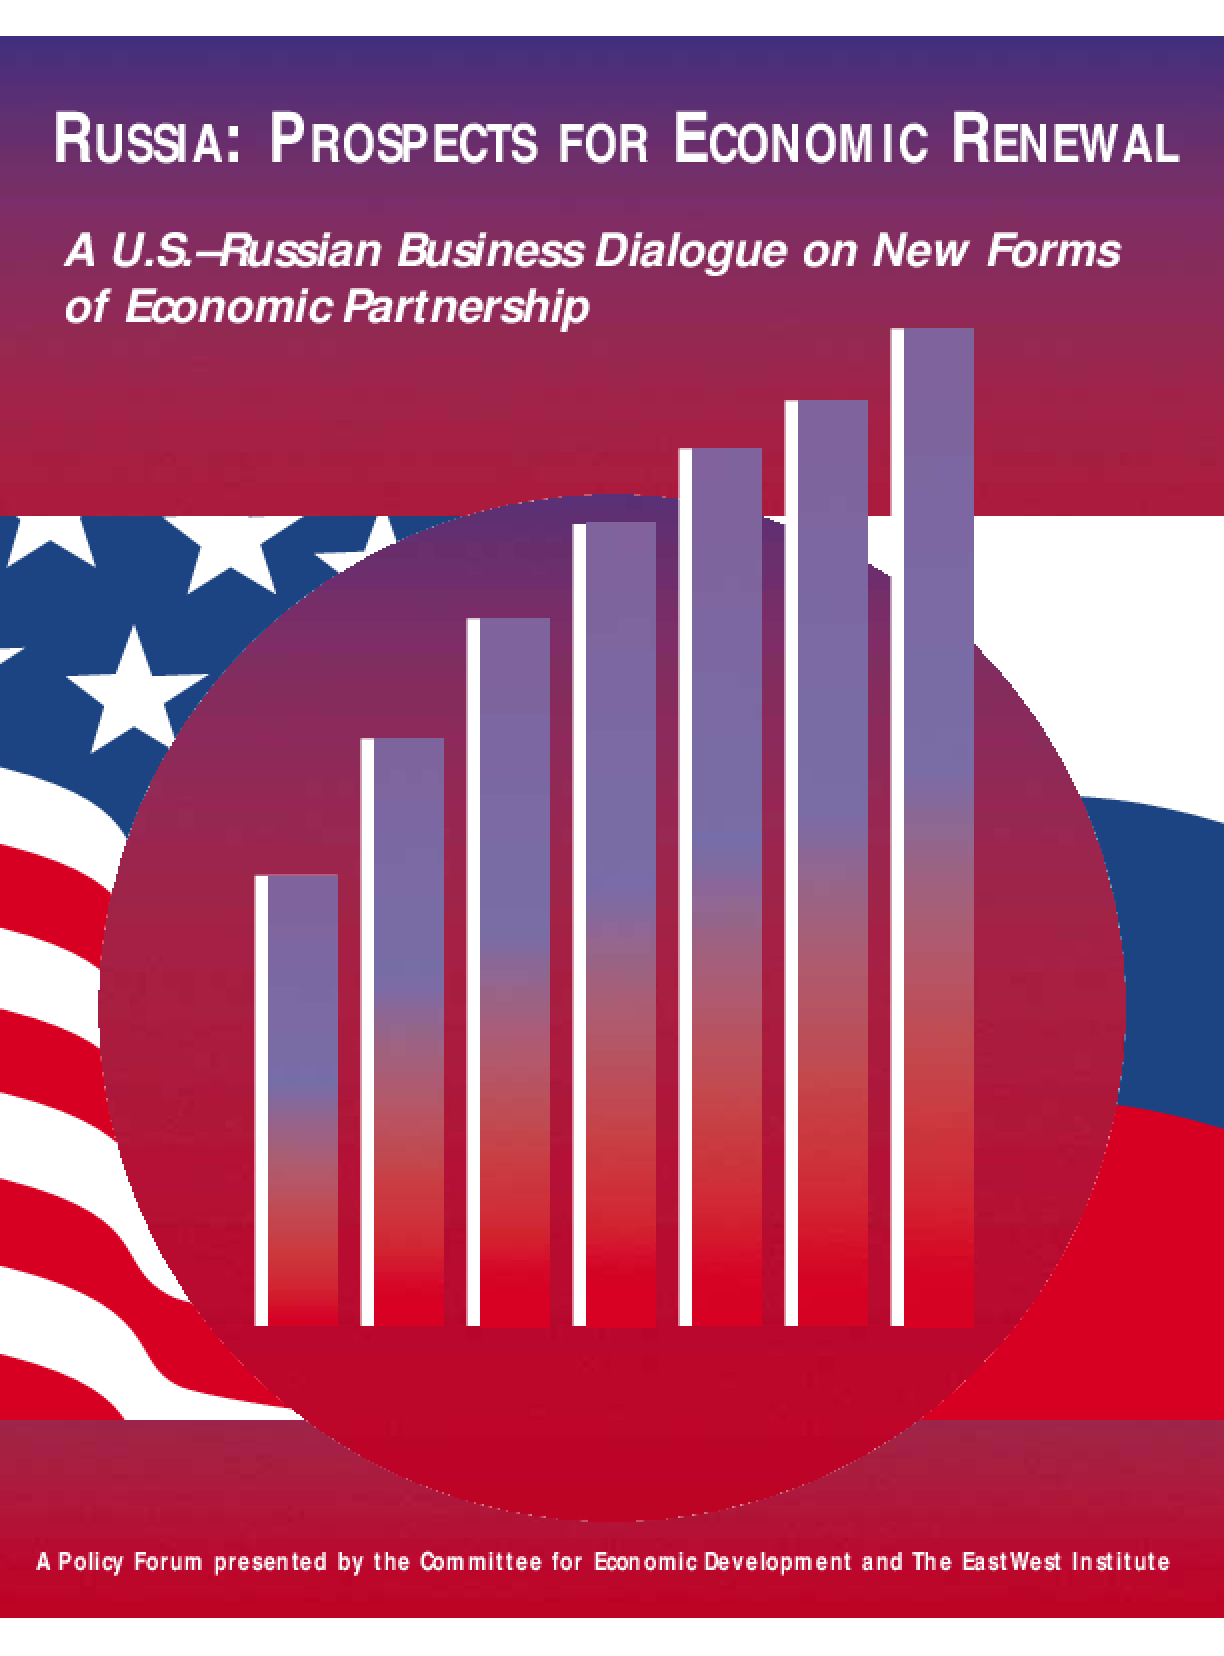 Russia: Prospects for Economic Renewal: A U.S.-Russian Business Dialogue on New Forms of Economic Partnership